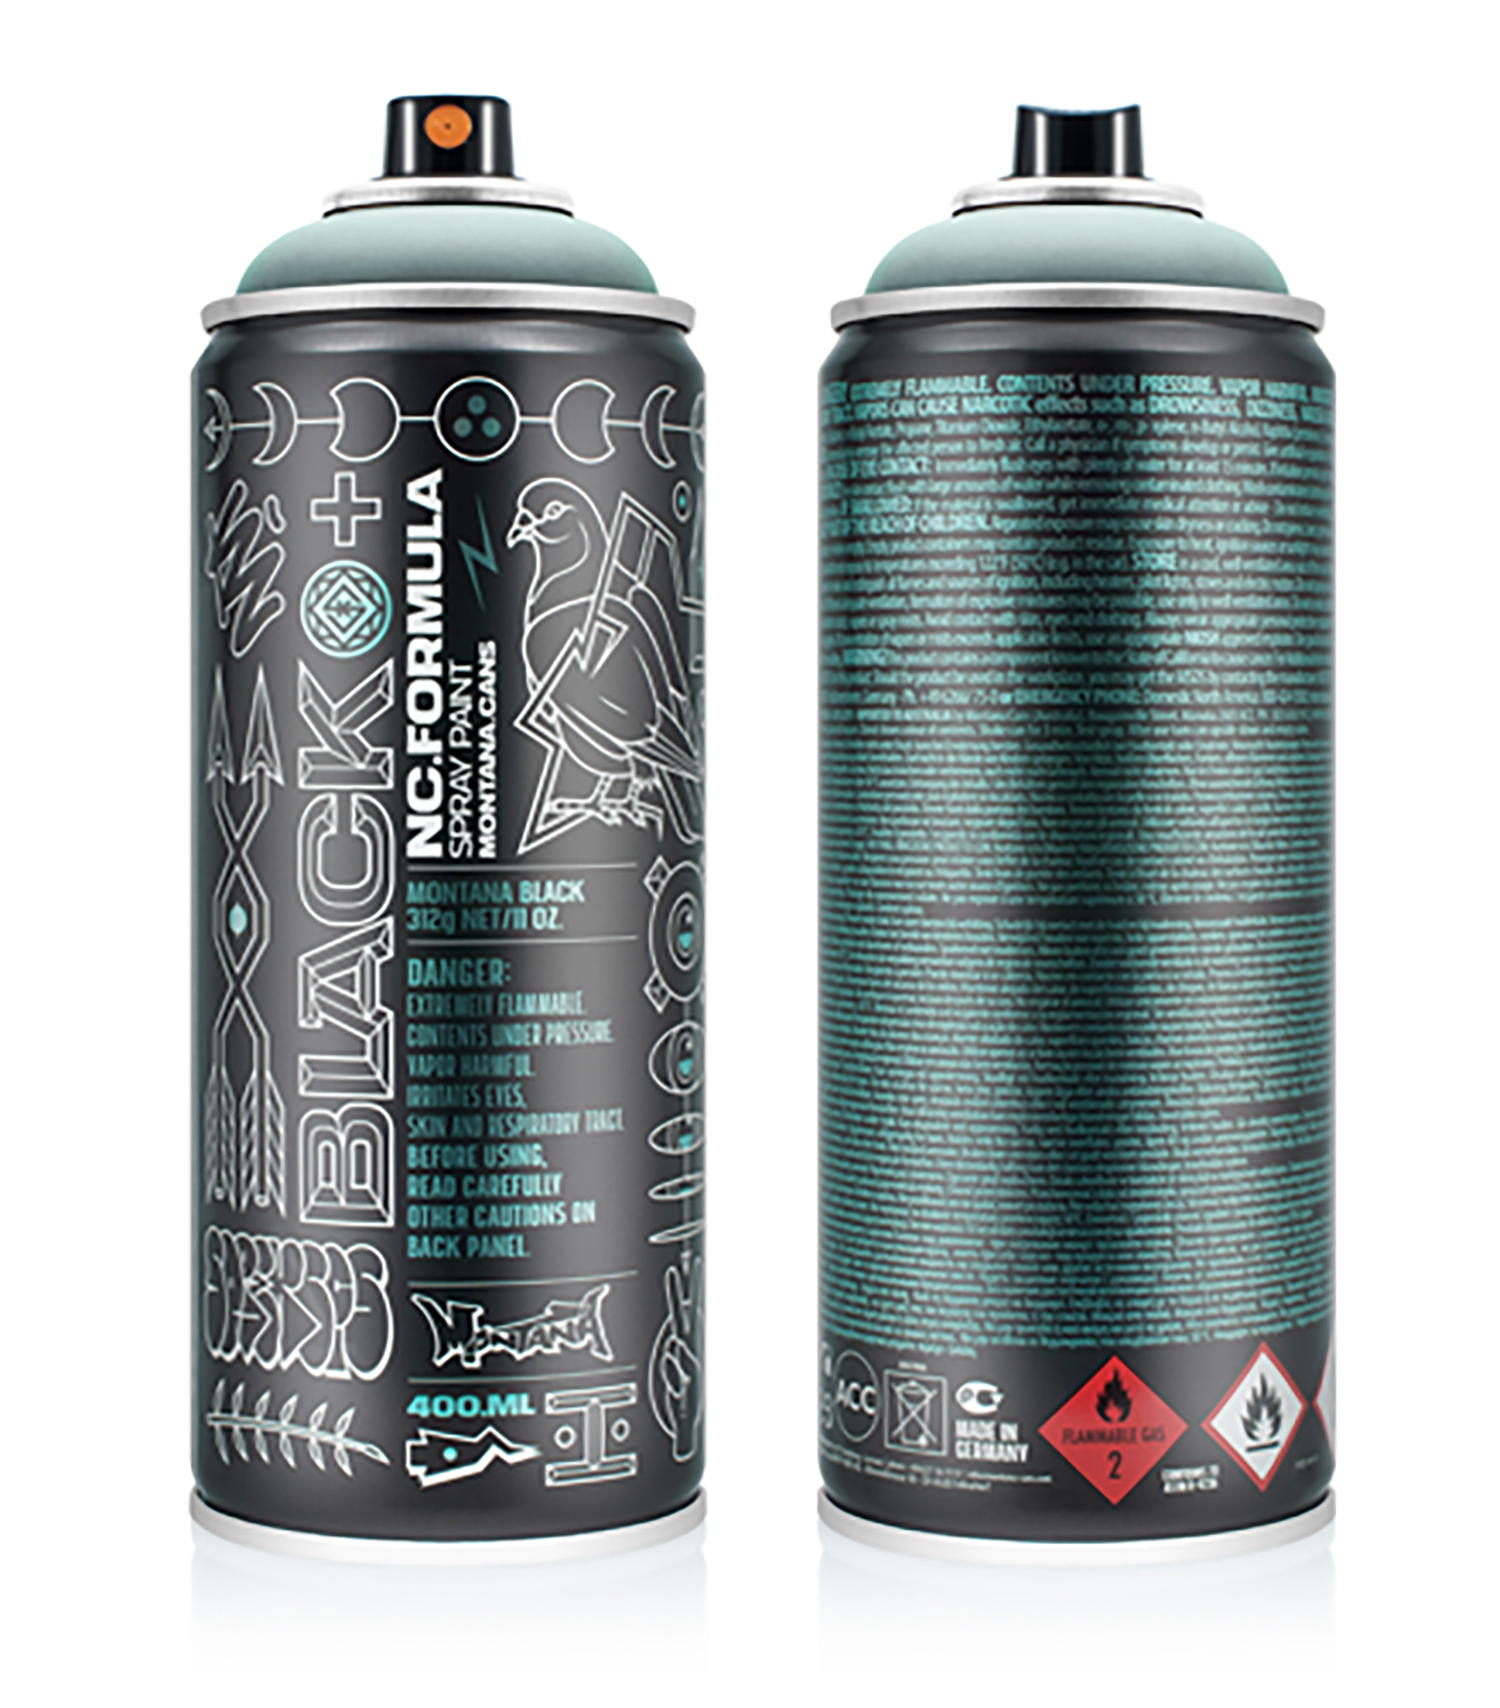 MONTANA-BLACK-ARTIST-SPRAY-400ML-SOBEKCIS